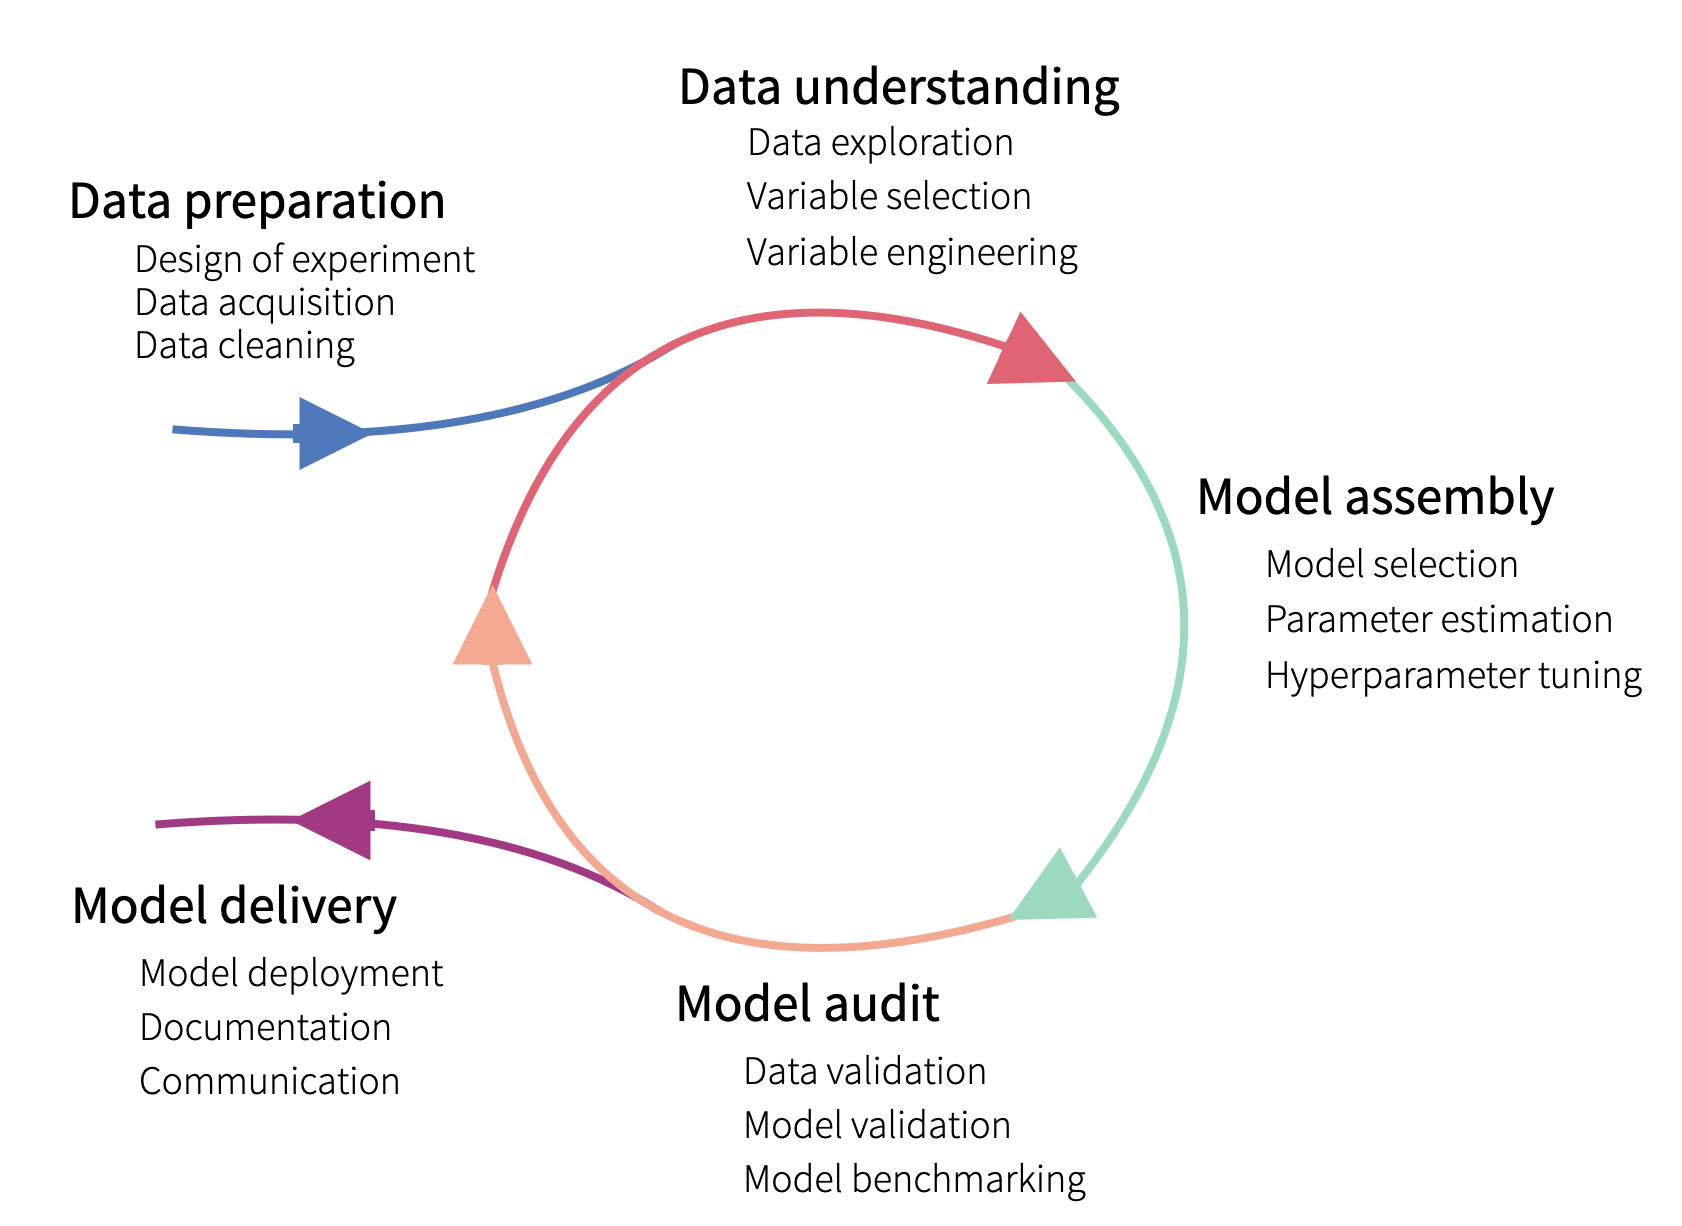 The lifecycle of a predictive model.